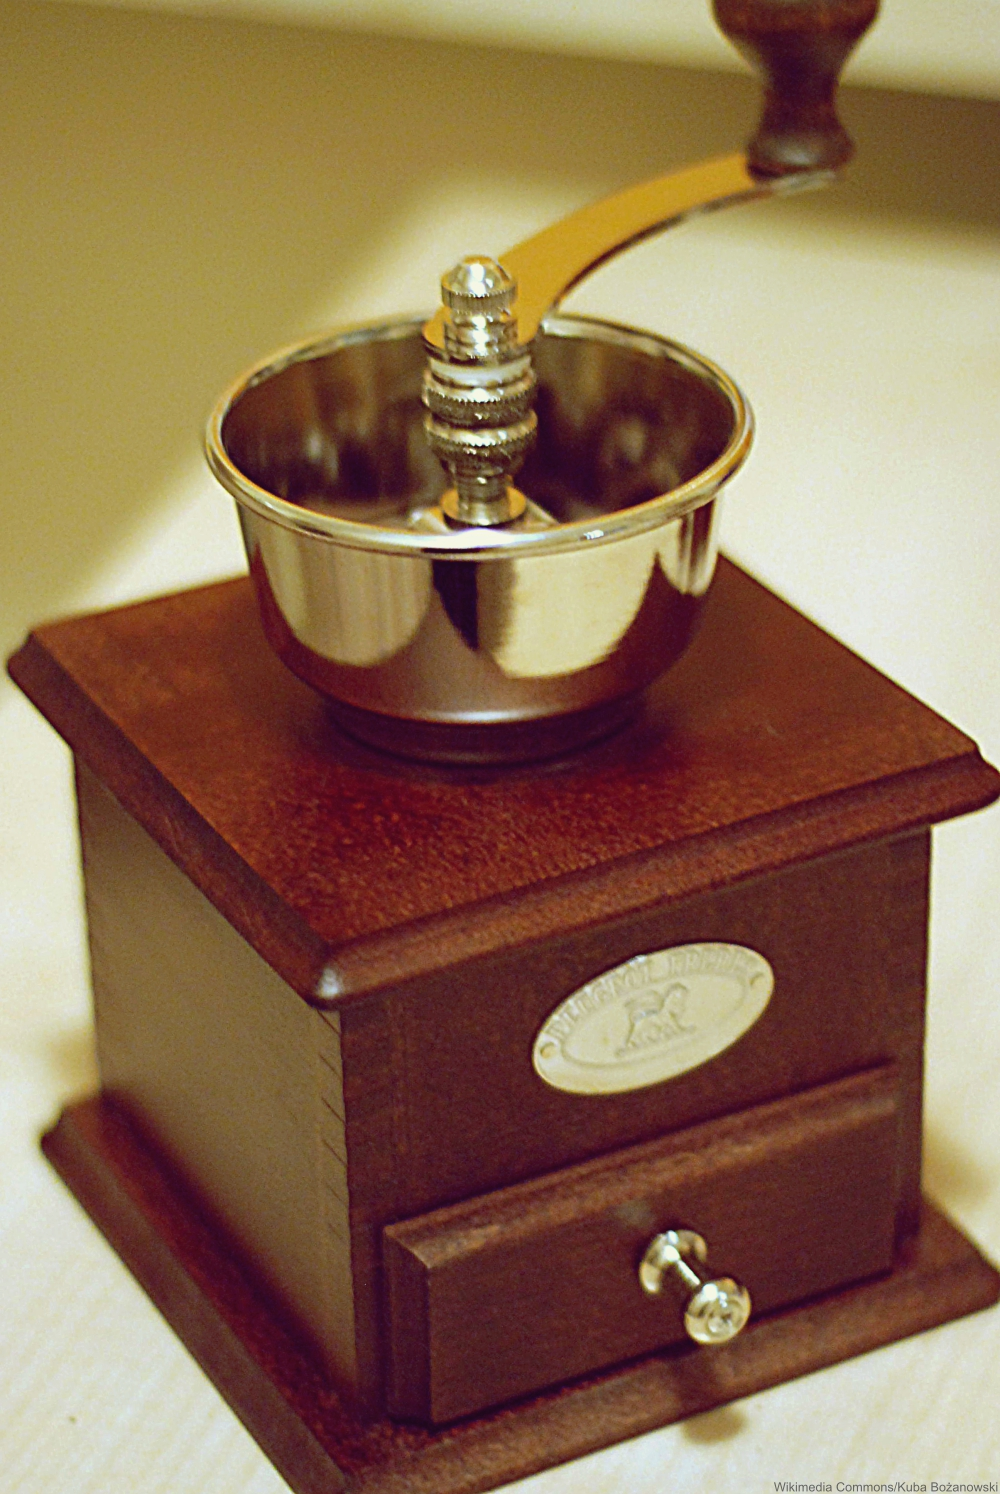 hand crank coffee grinder - Technology Items We Miss